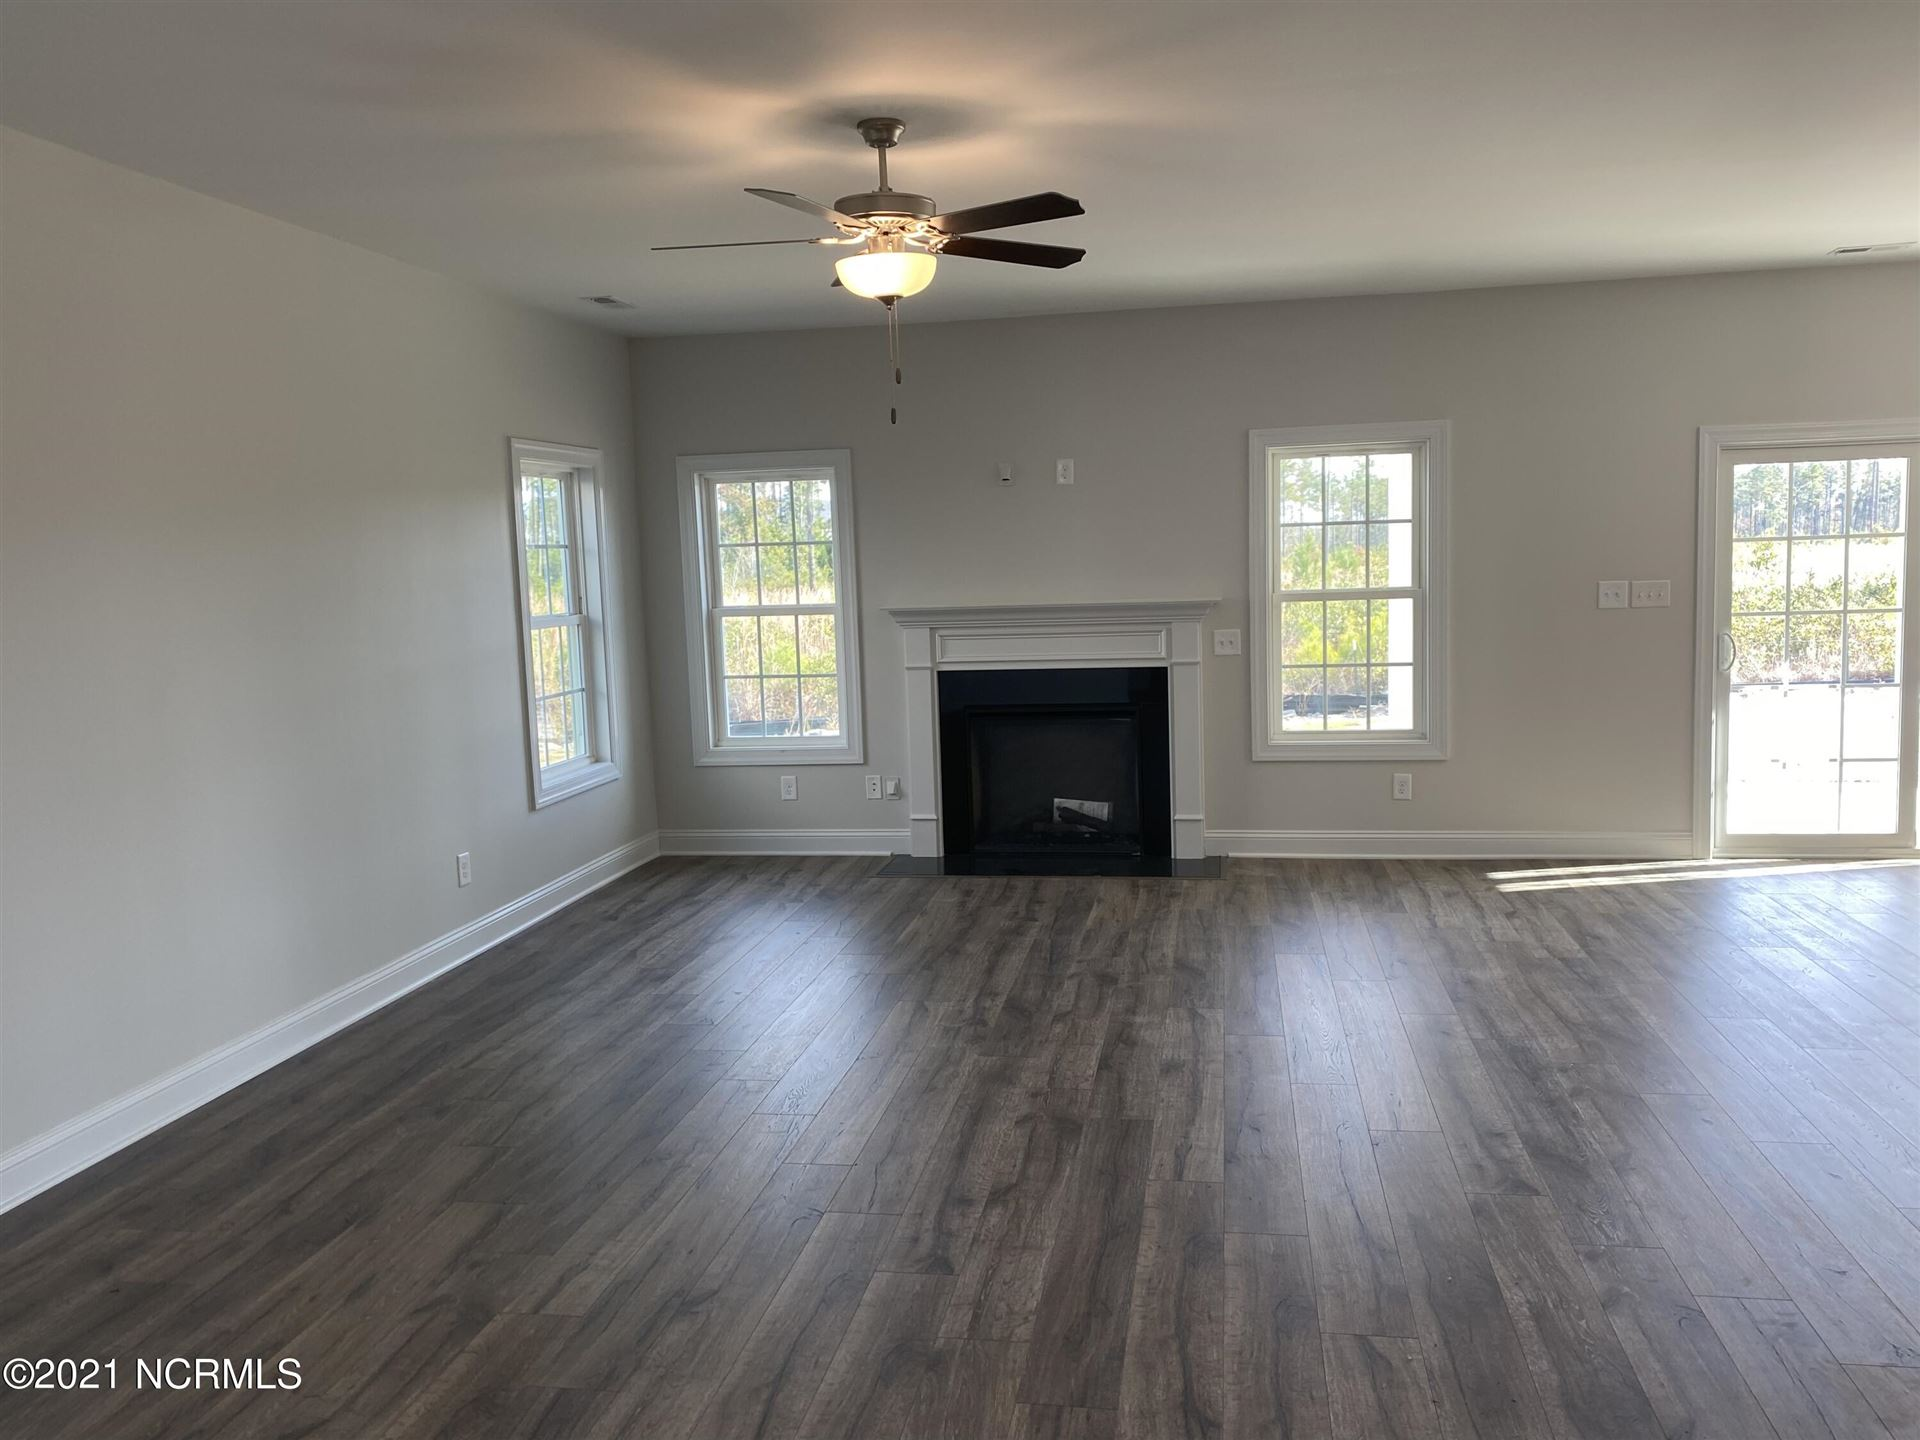 Photo of 545 Transom Way, Sneads Ferry, NC 28460 (MLS # 100283492)